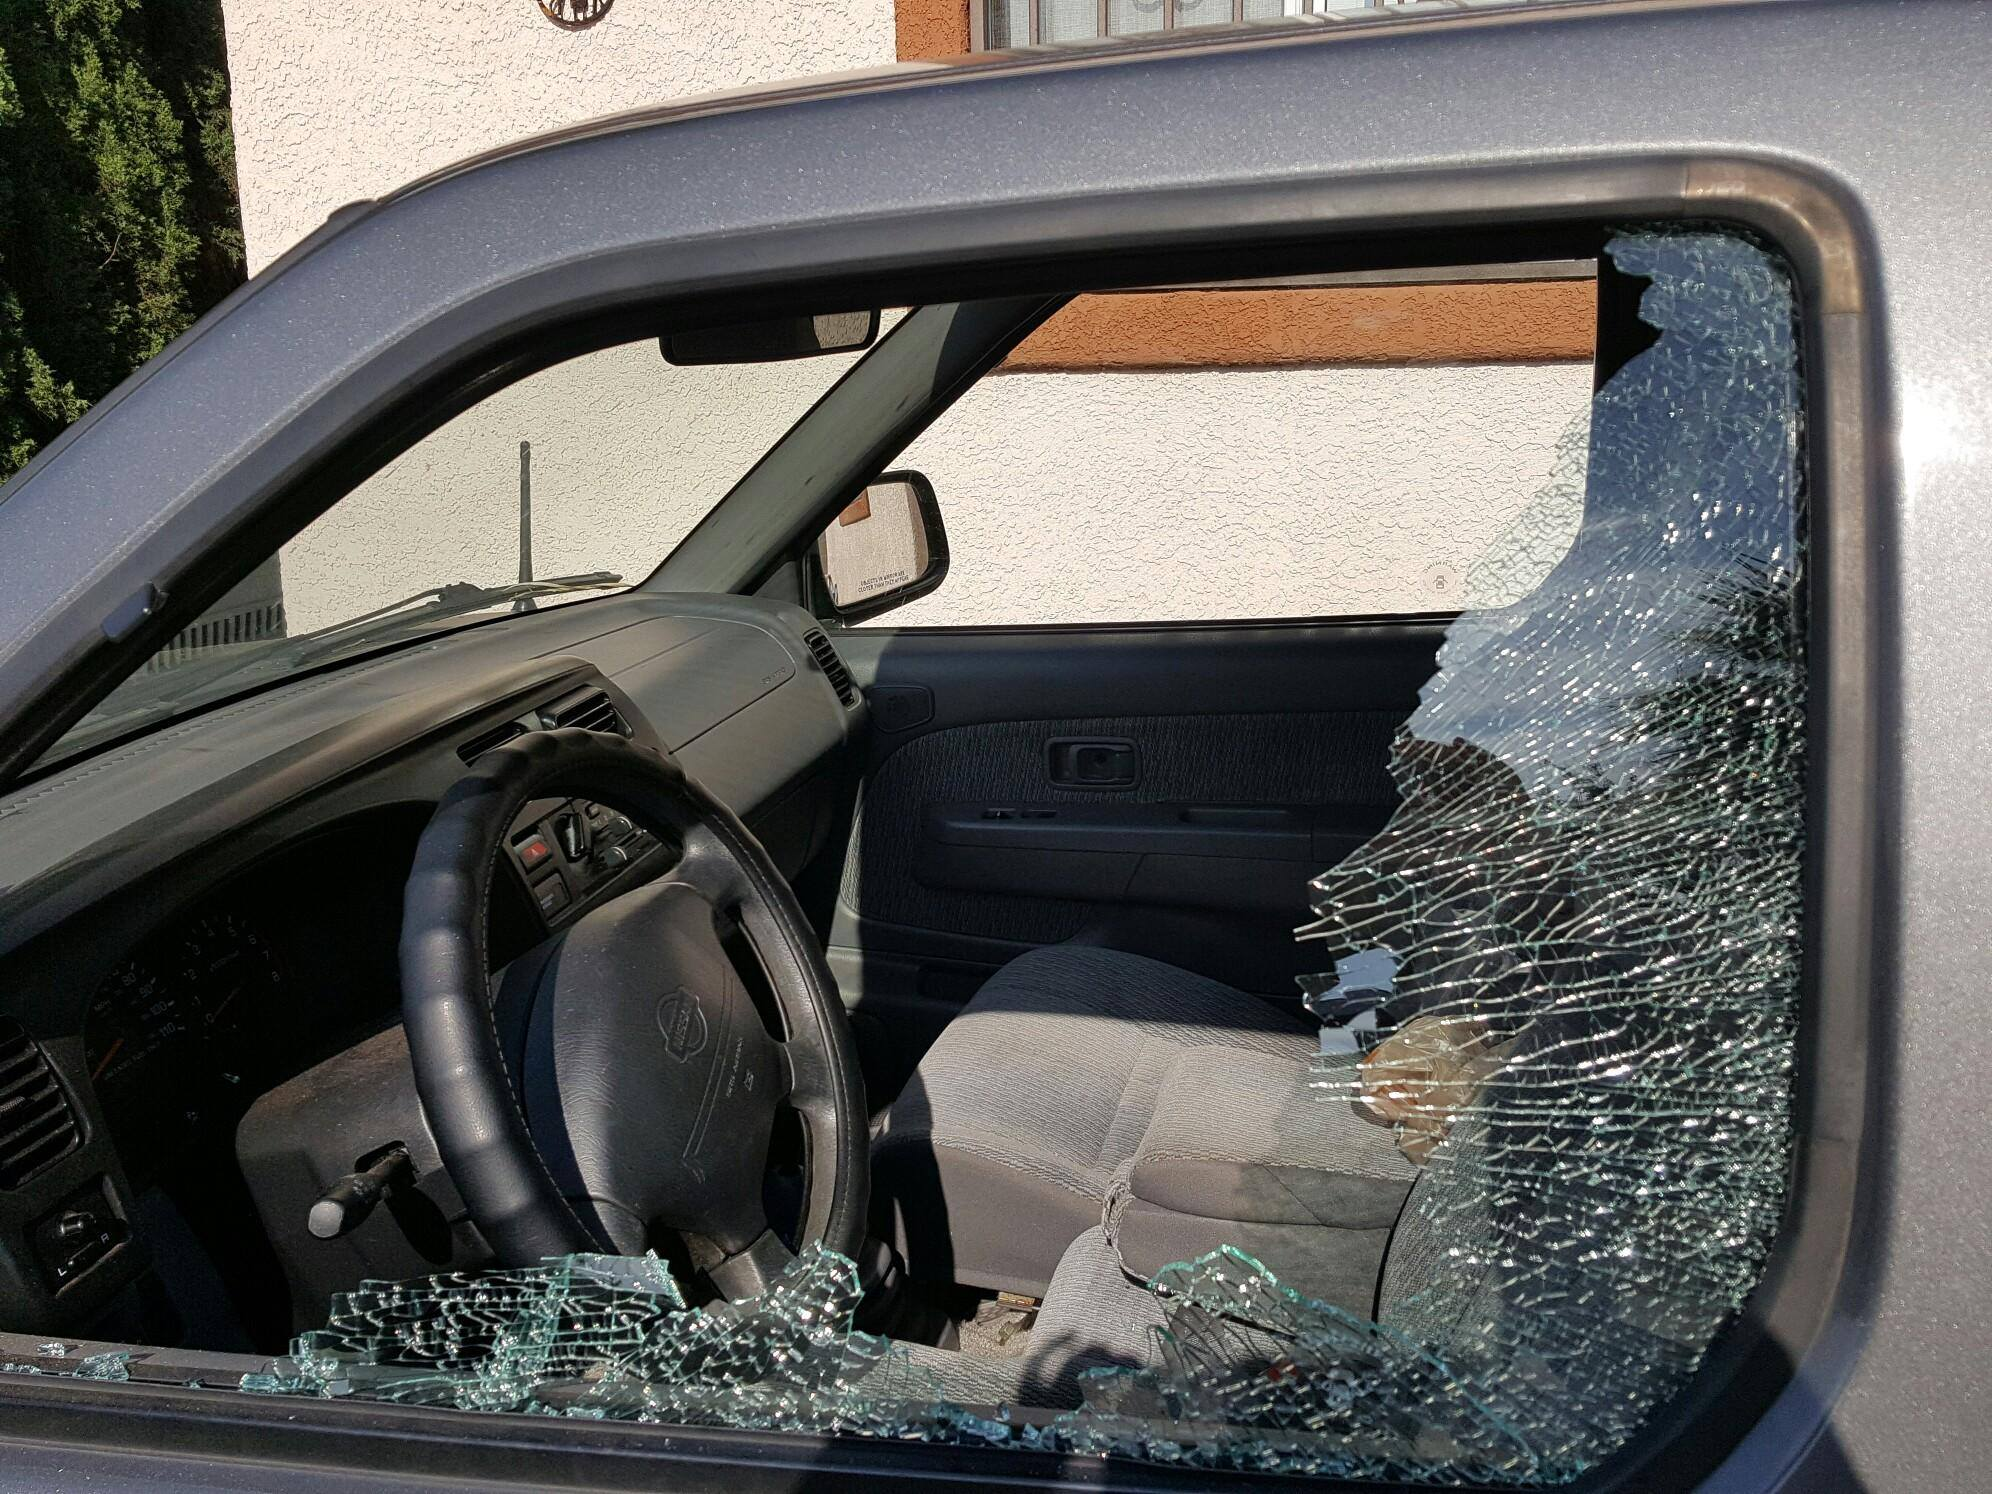 A vandal with a BB gun has been shooting out windows in car in the Santa Clara - Ivins area. Police have identified no suspects yet and are asking the public to keep an eye out for suspiscious activity, Ivins, Utah, June 23, 2016 | Photo courtesy Griselda Pelayo, St. George News